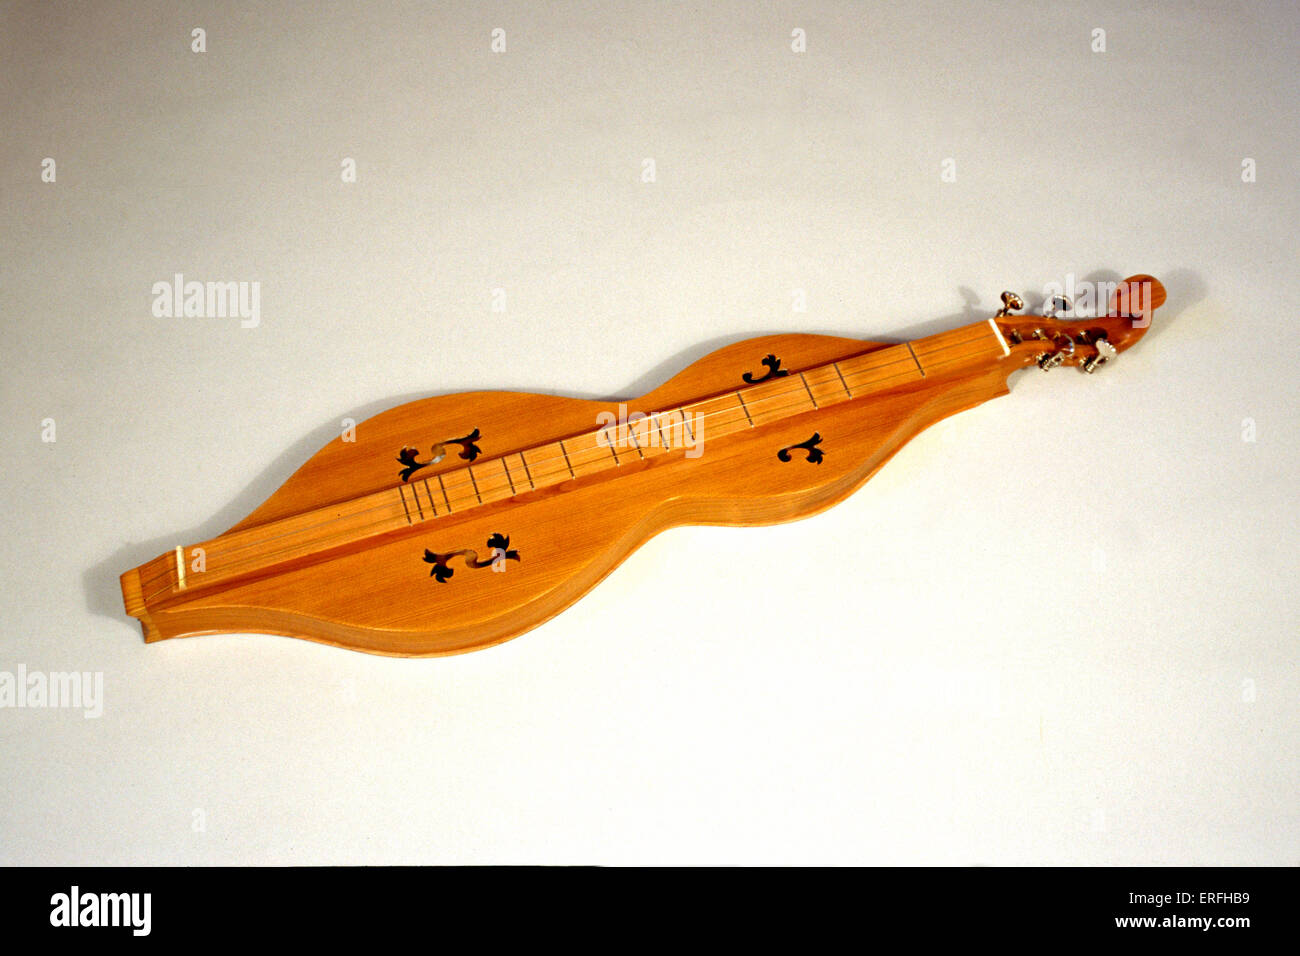 String musical instruments. Types of string instruments 90